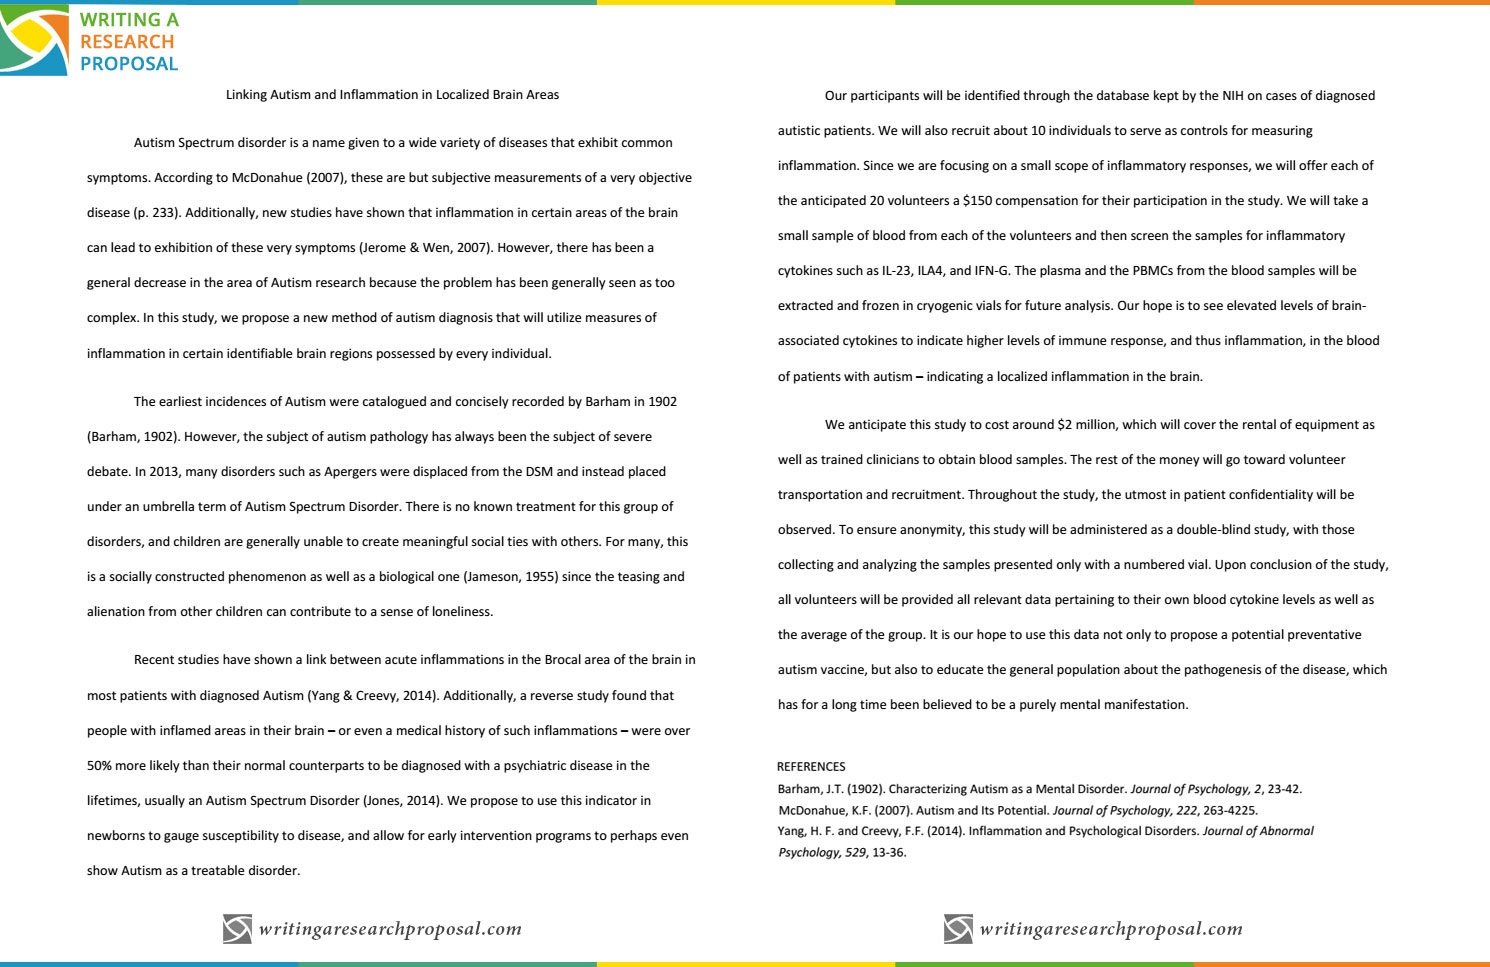 004 Research Paper Autistic Disorder Apa Style Autism Fascinating Thesis Full